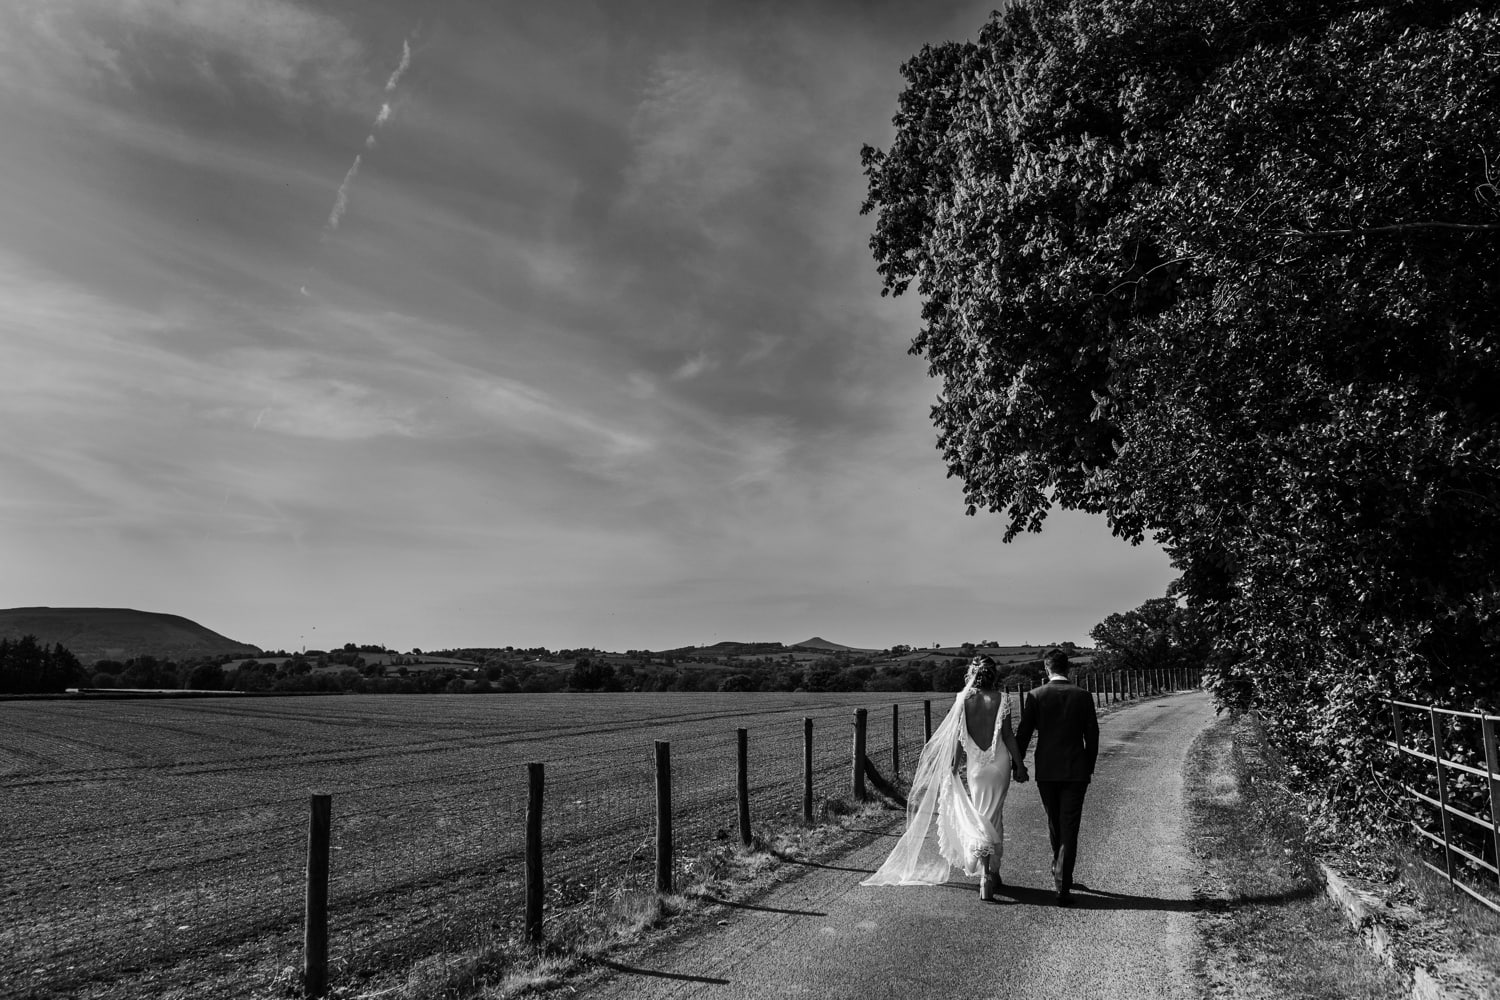 Bride and groom wedding day portraits at Llansantffraed Court, Monmouthshire in South Wales